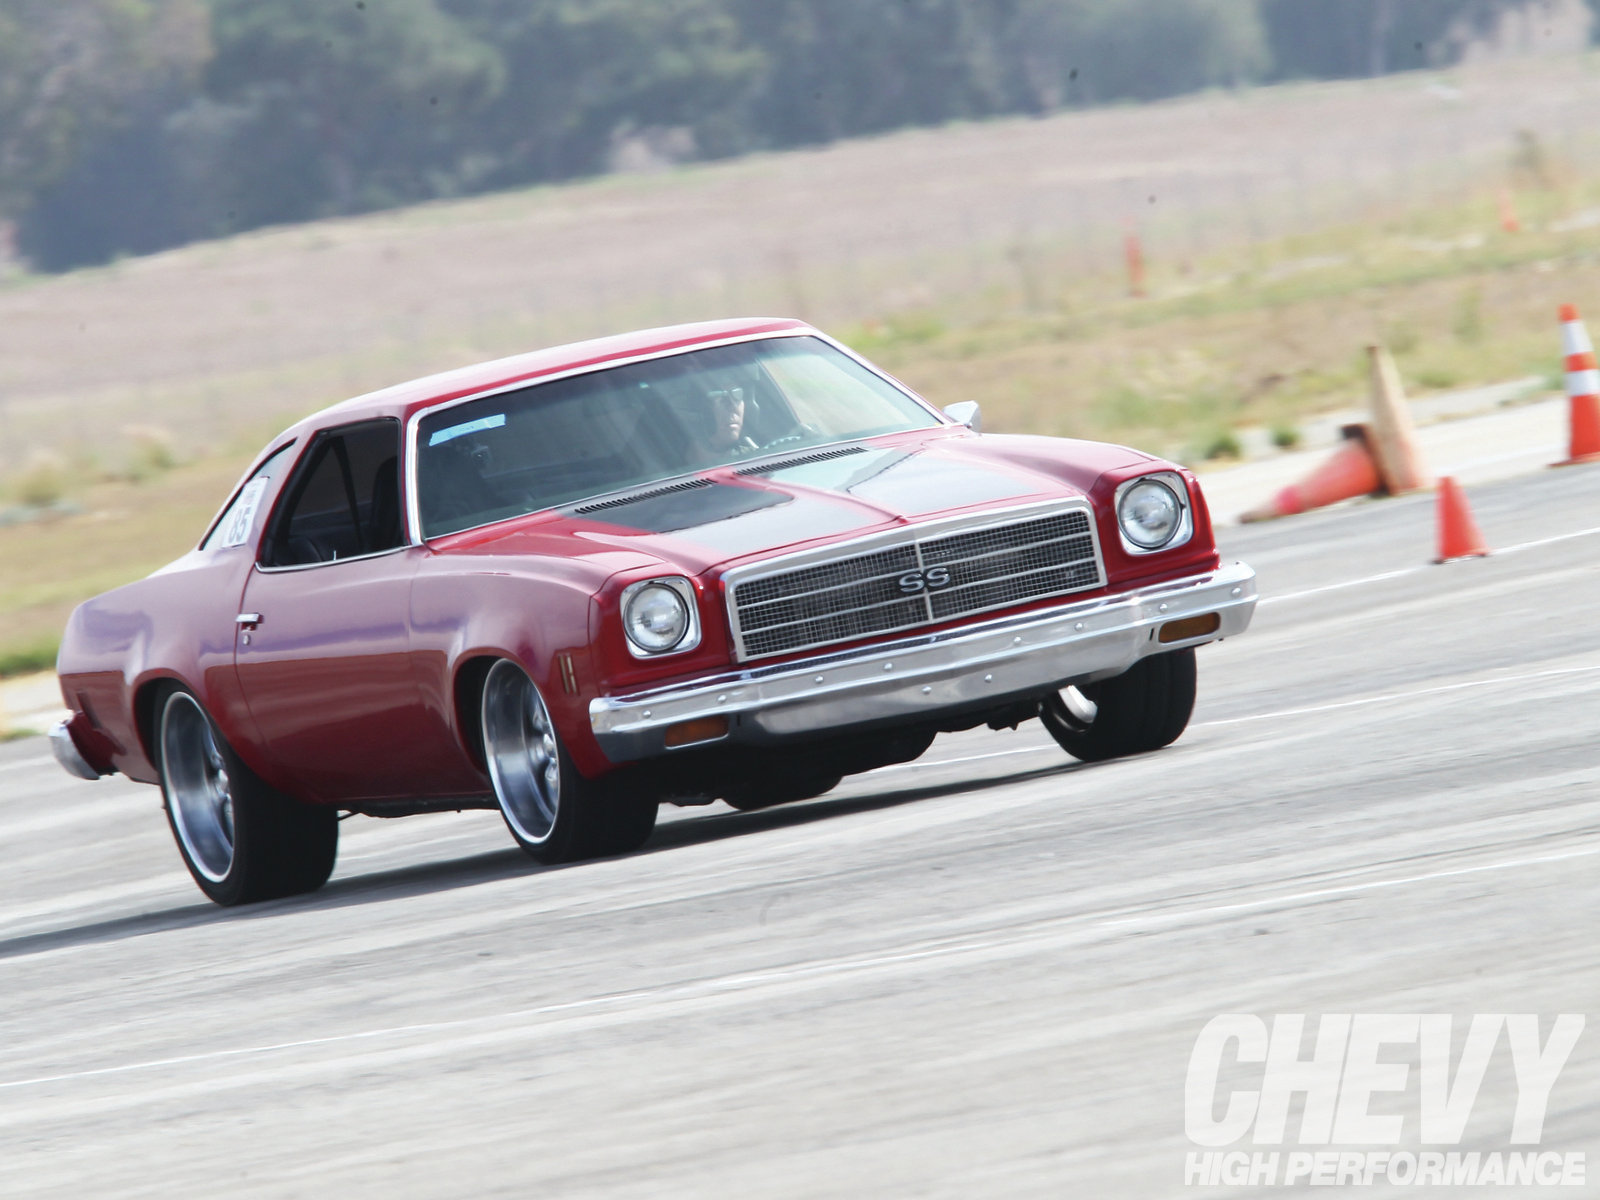 chevrolet malibu hot rod - photo #8